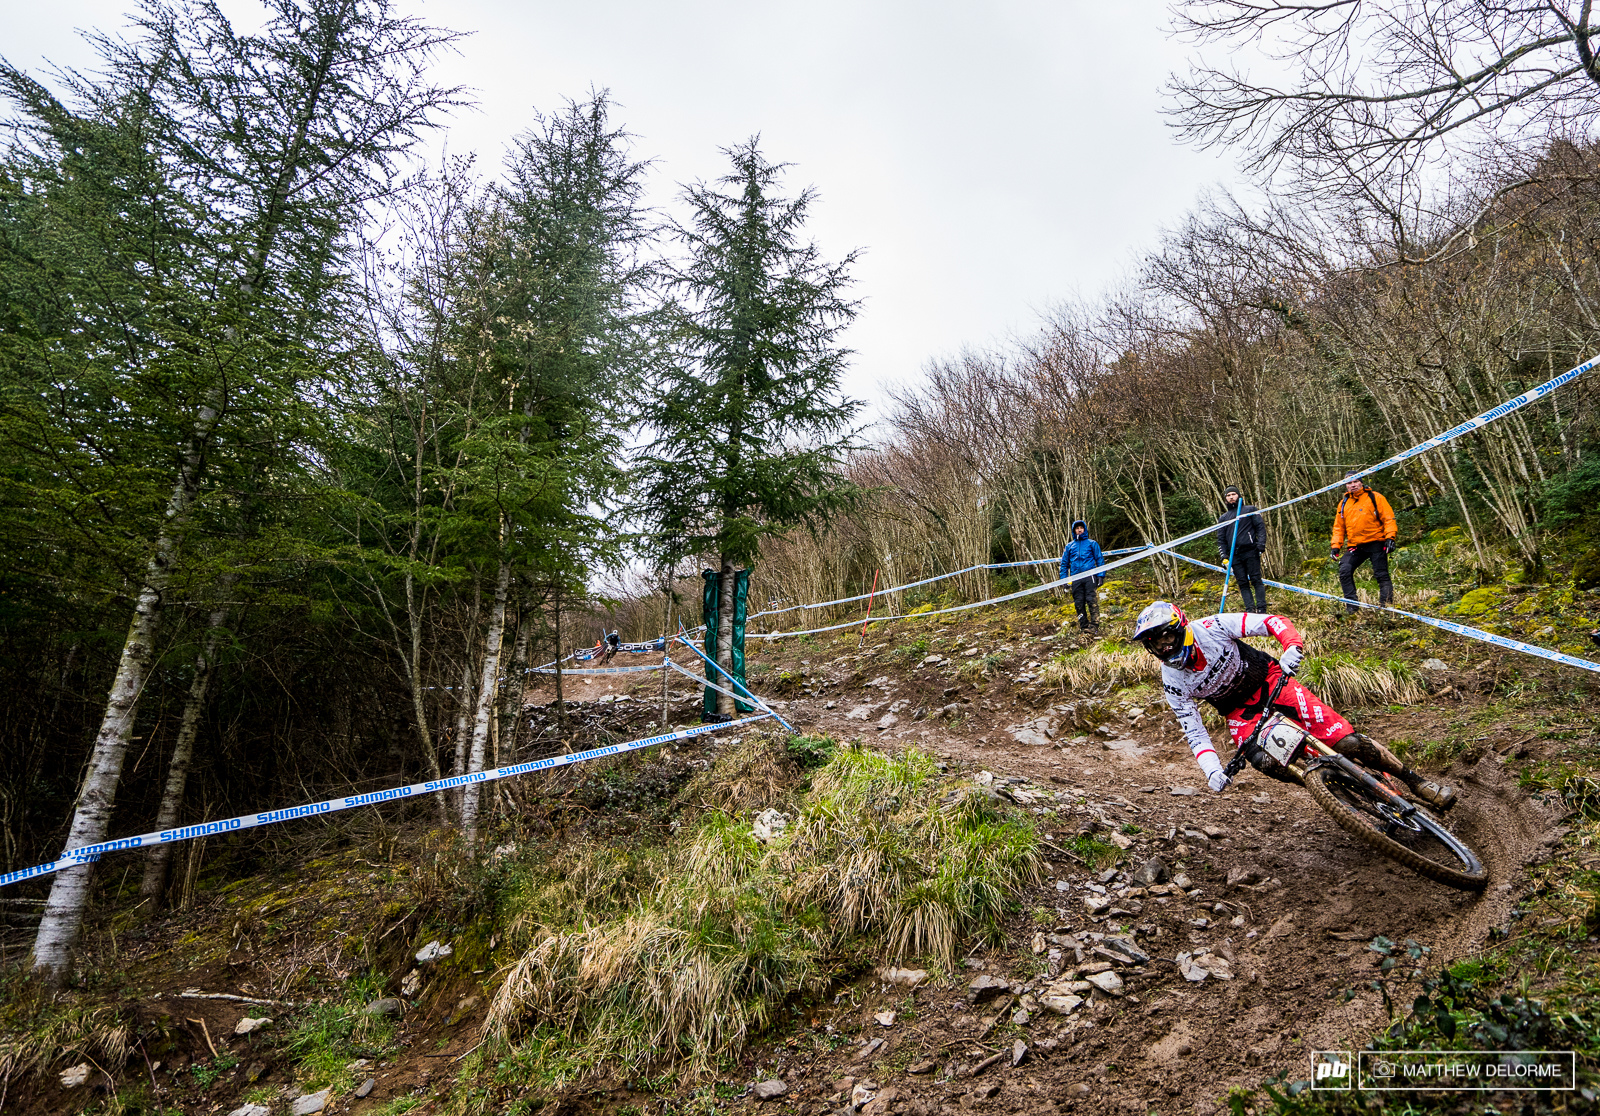 Gee Atherton slip-sliding through the slop on the last run of the day.